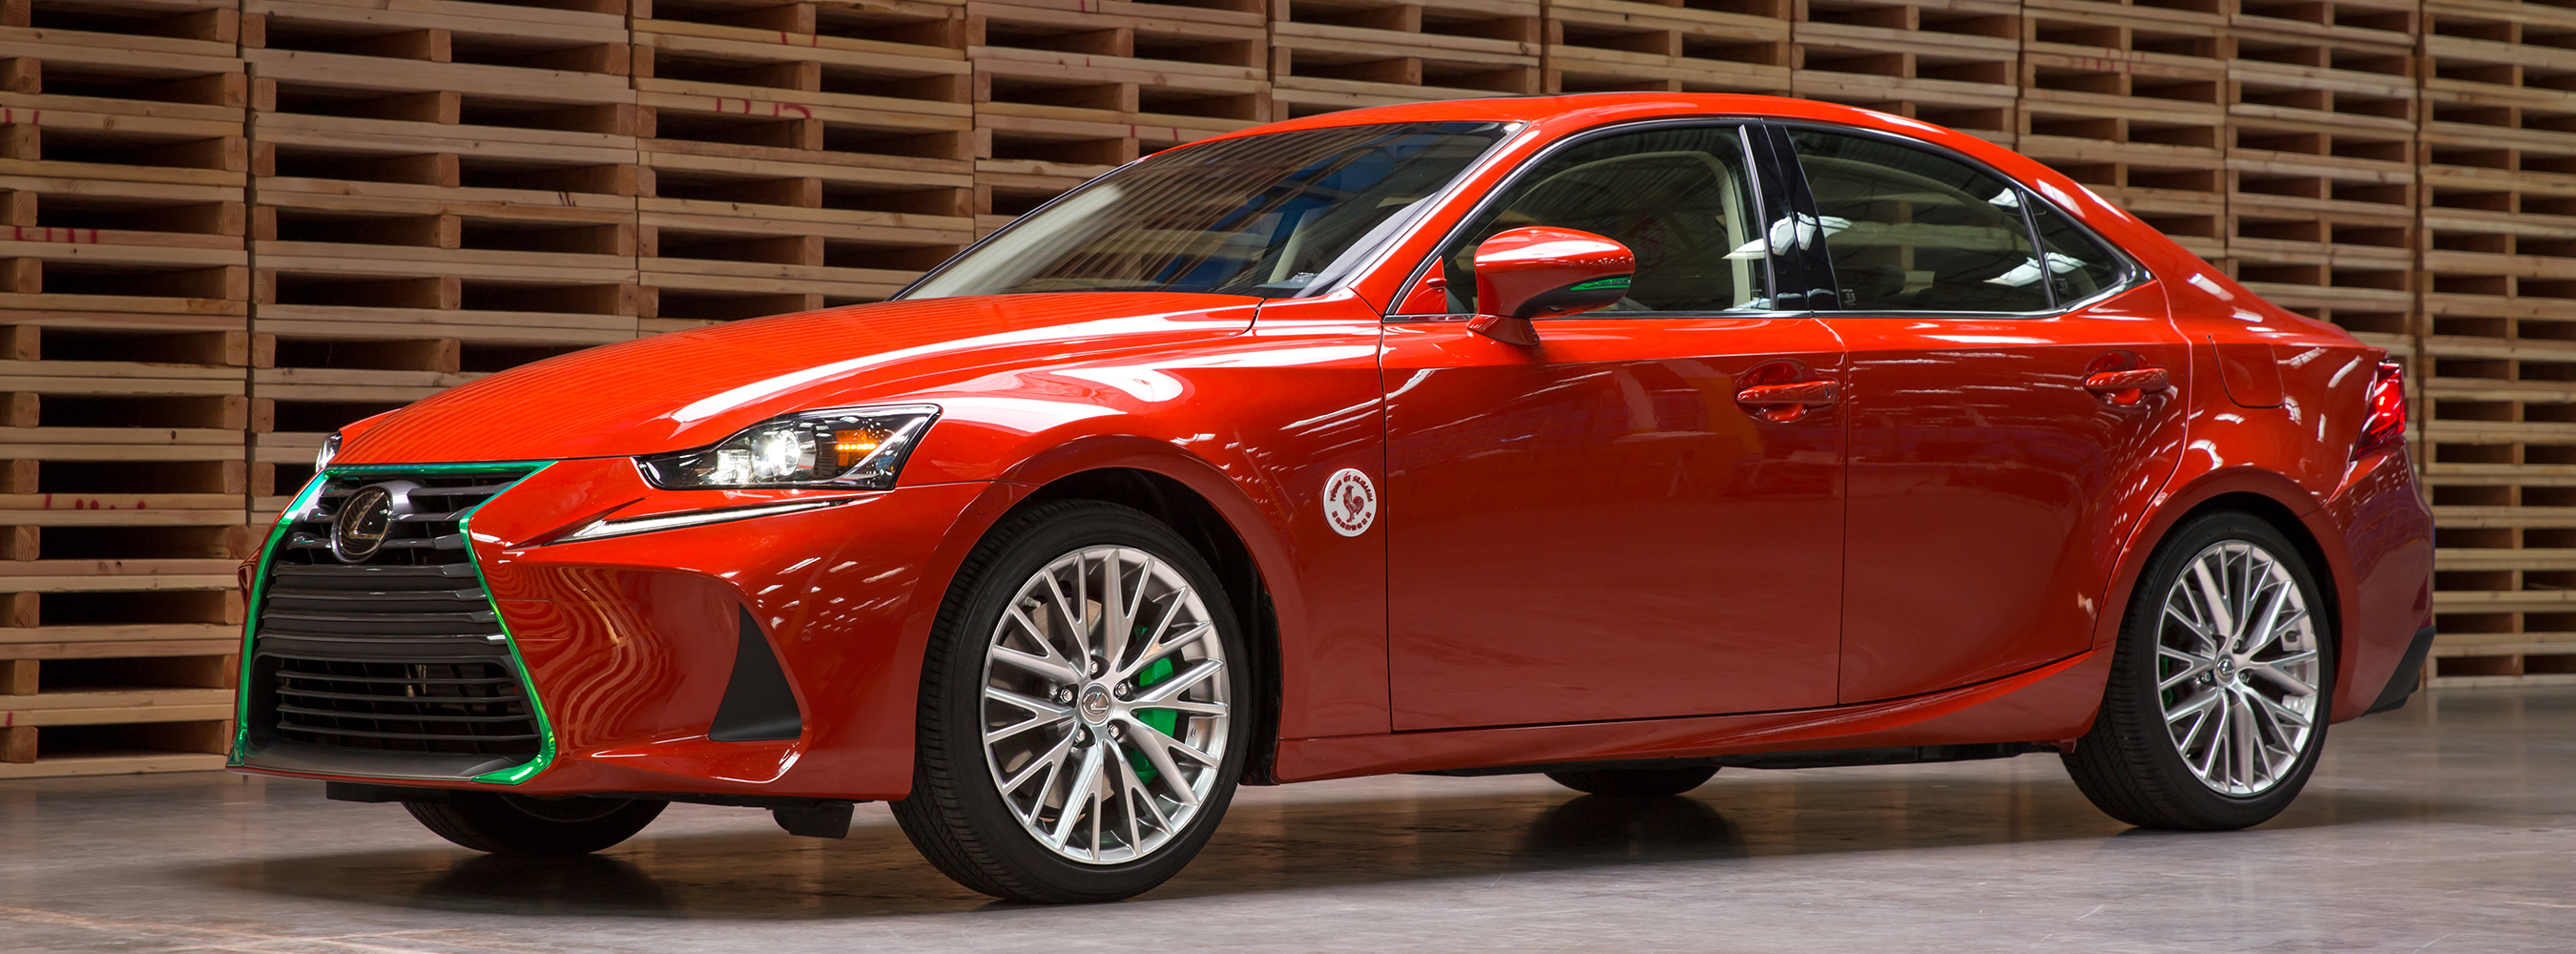 Lexus Serves up the Sriracha IS: Making a Hot Car Spicy